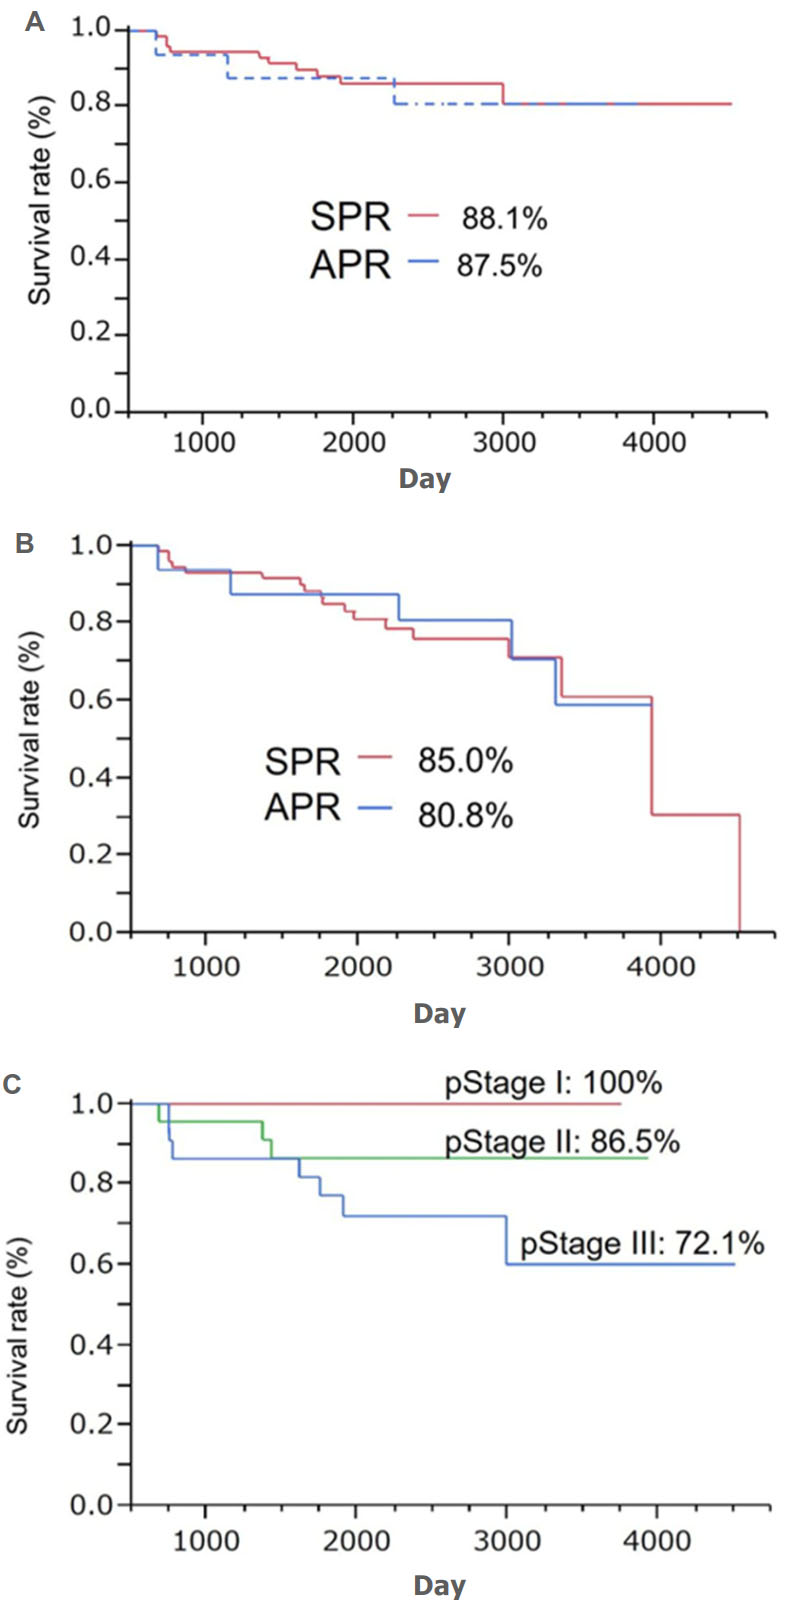 Clinical Feasibility Of Sphincter Preserving Resection With Transanal Rectal Dissection For Low Lying Rectal Cancer In Japanese Patients A Single Center Cohort Study